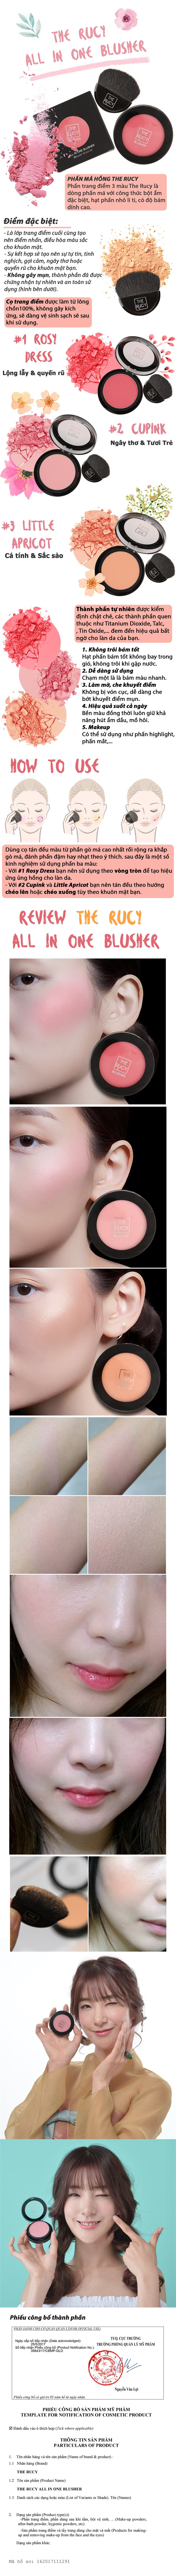 Phấn Má Hồng The Rucy All In One Blusher (6g) 1